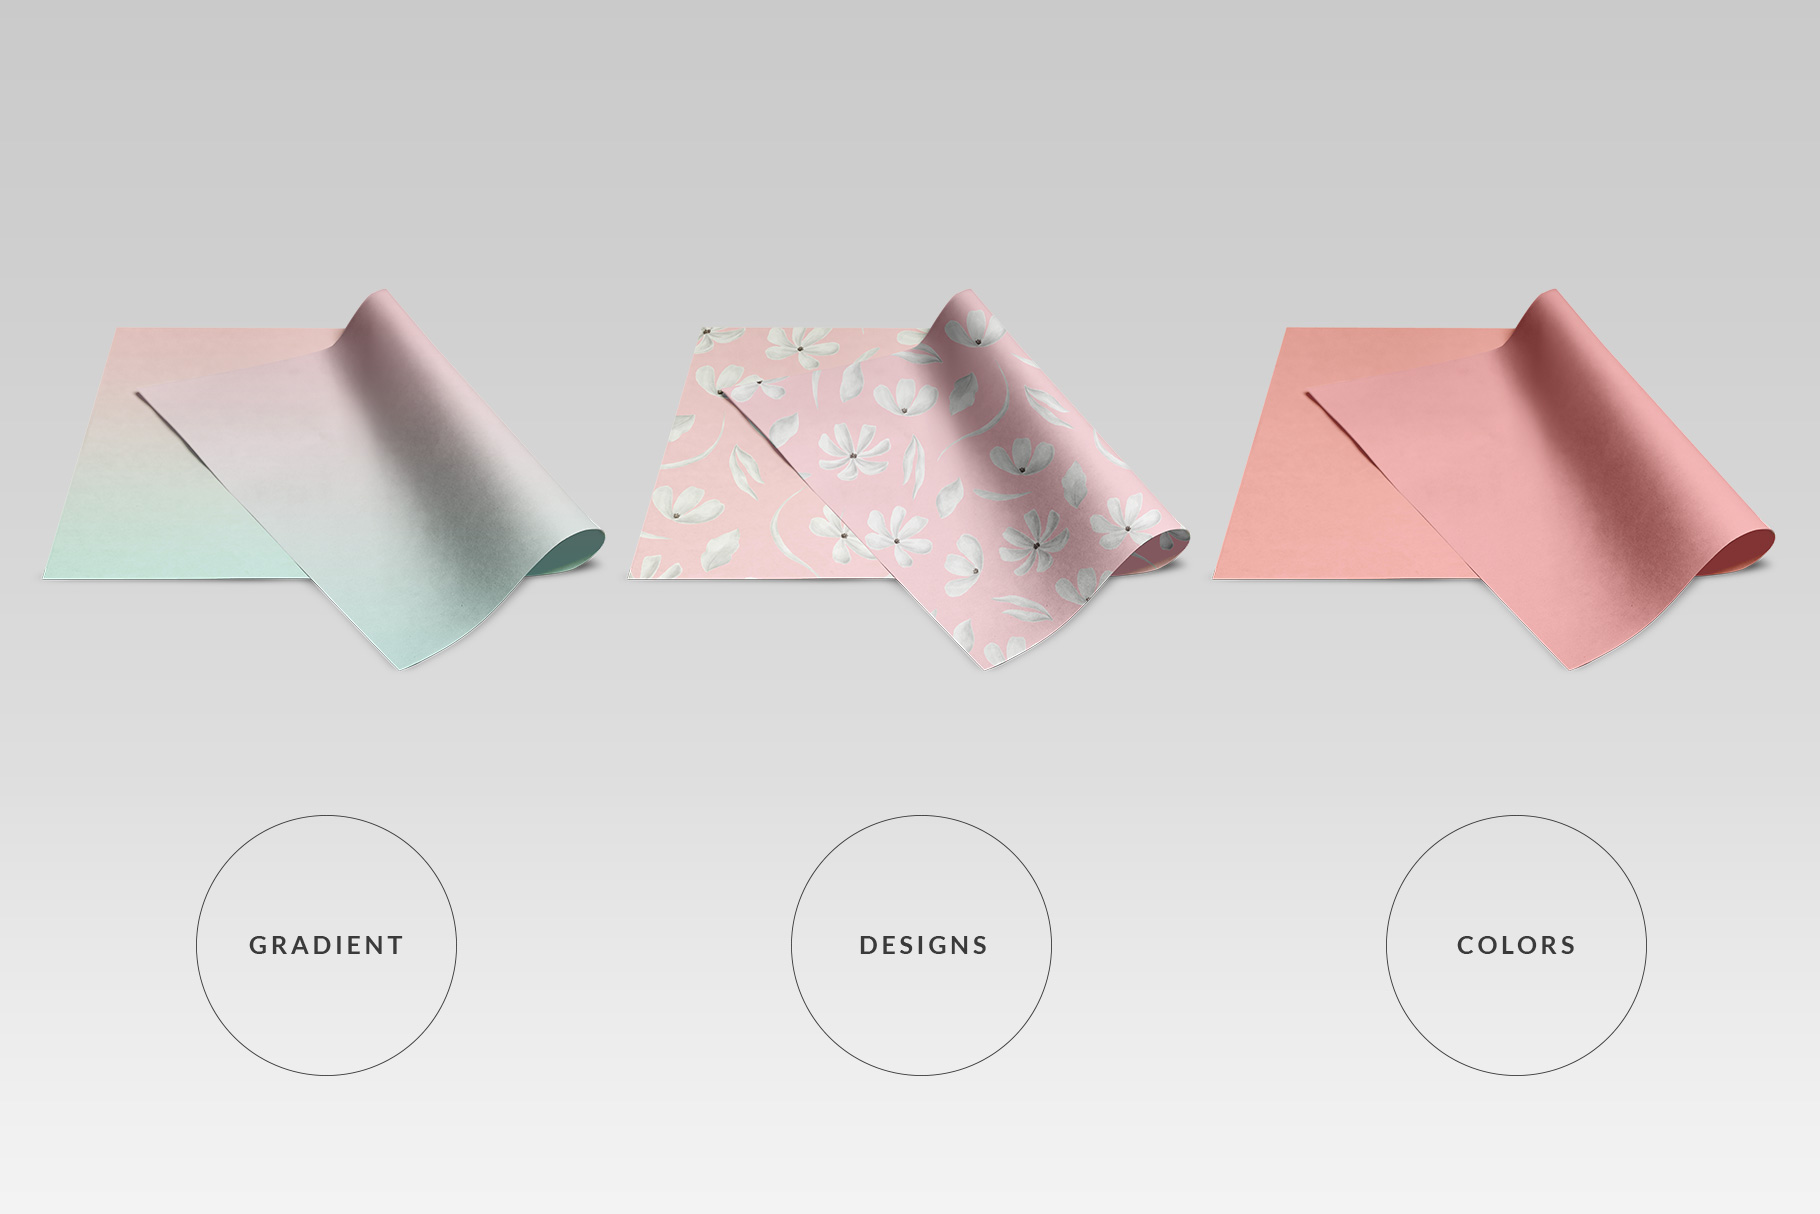 types of the top view folded wrapping paper mockup